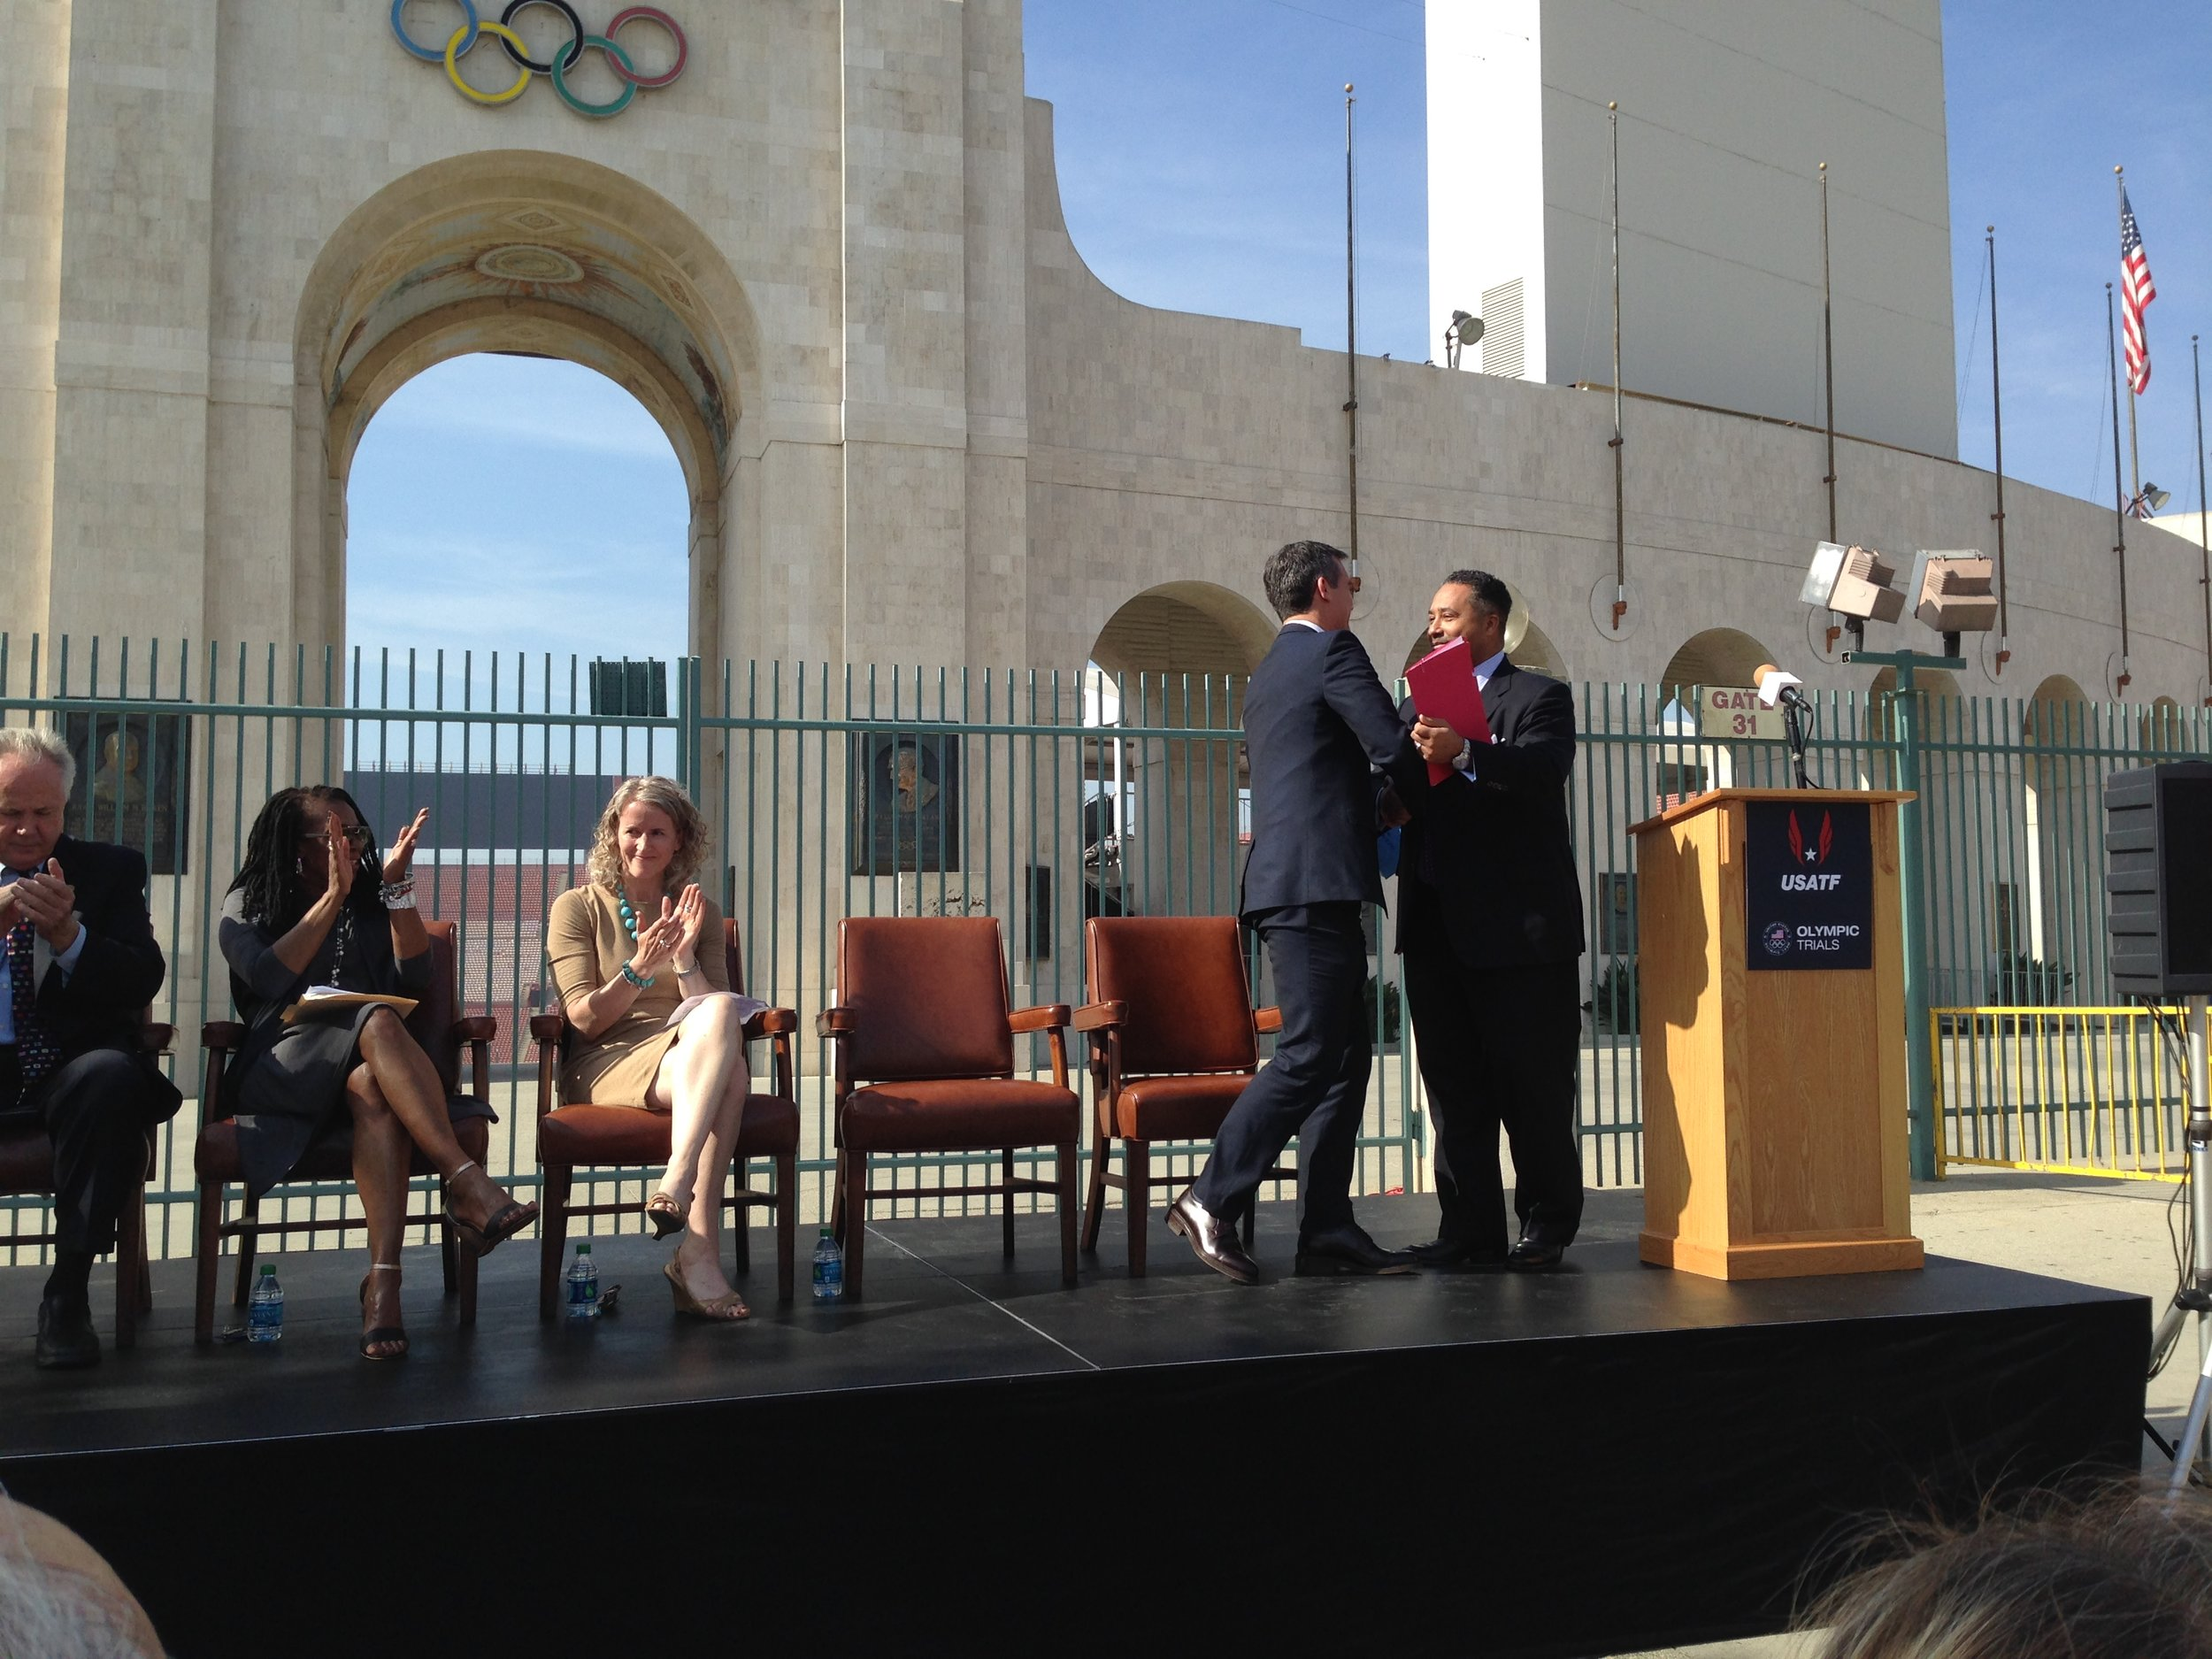 At a 2014 LA Marathon announcement, in front of the famed peristyle end of the LA Coliseum